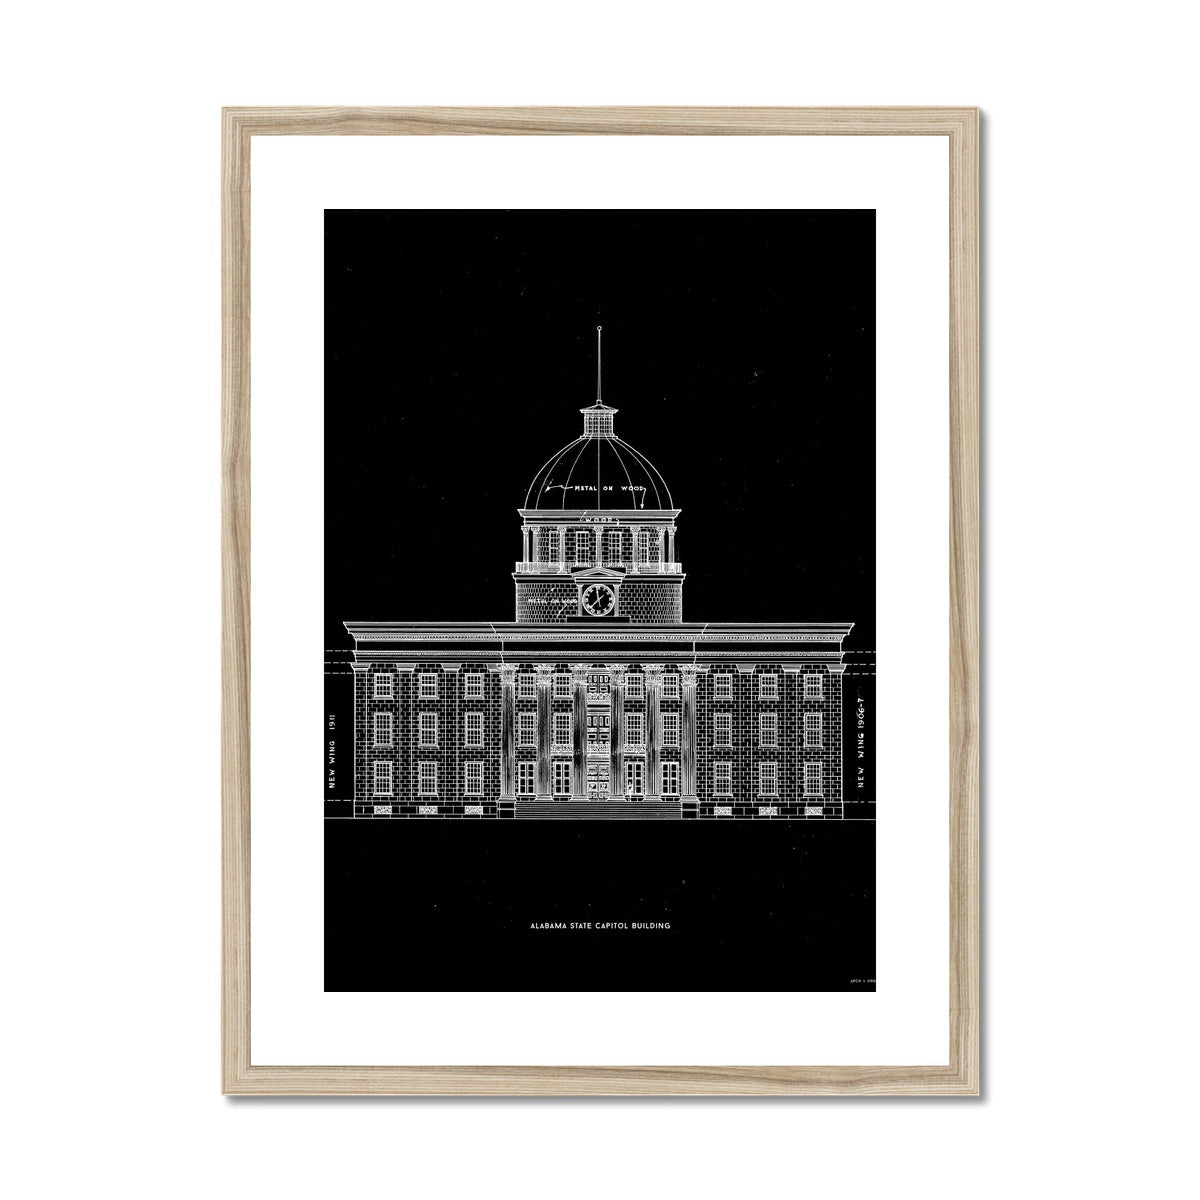 The Alabama State Capitol Building - West Elevation - Black -  Framed & Mounted Print